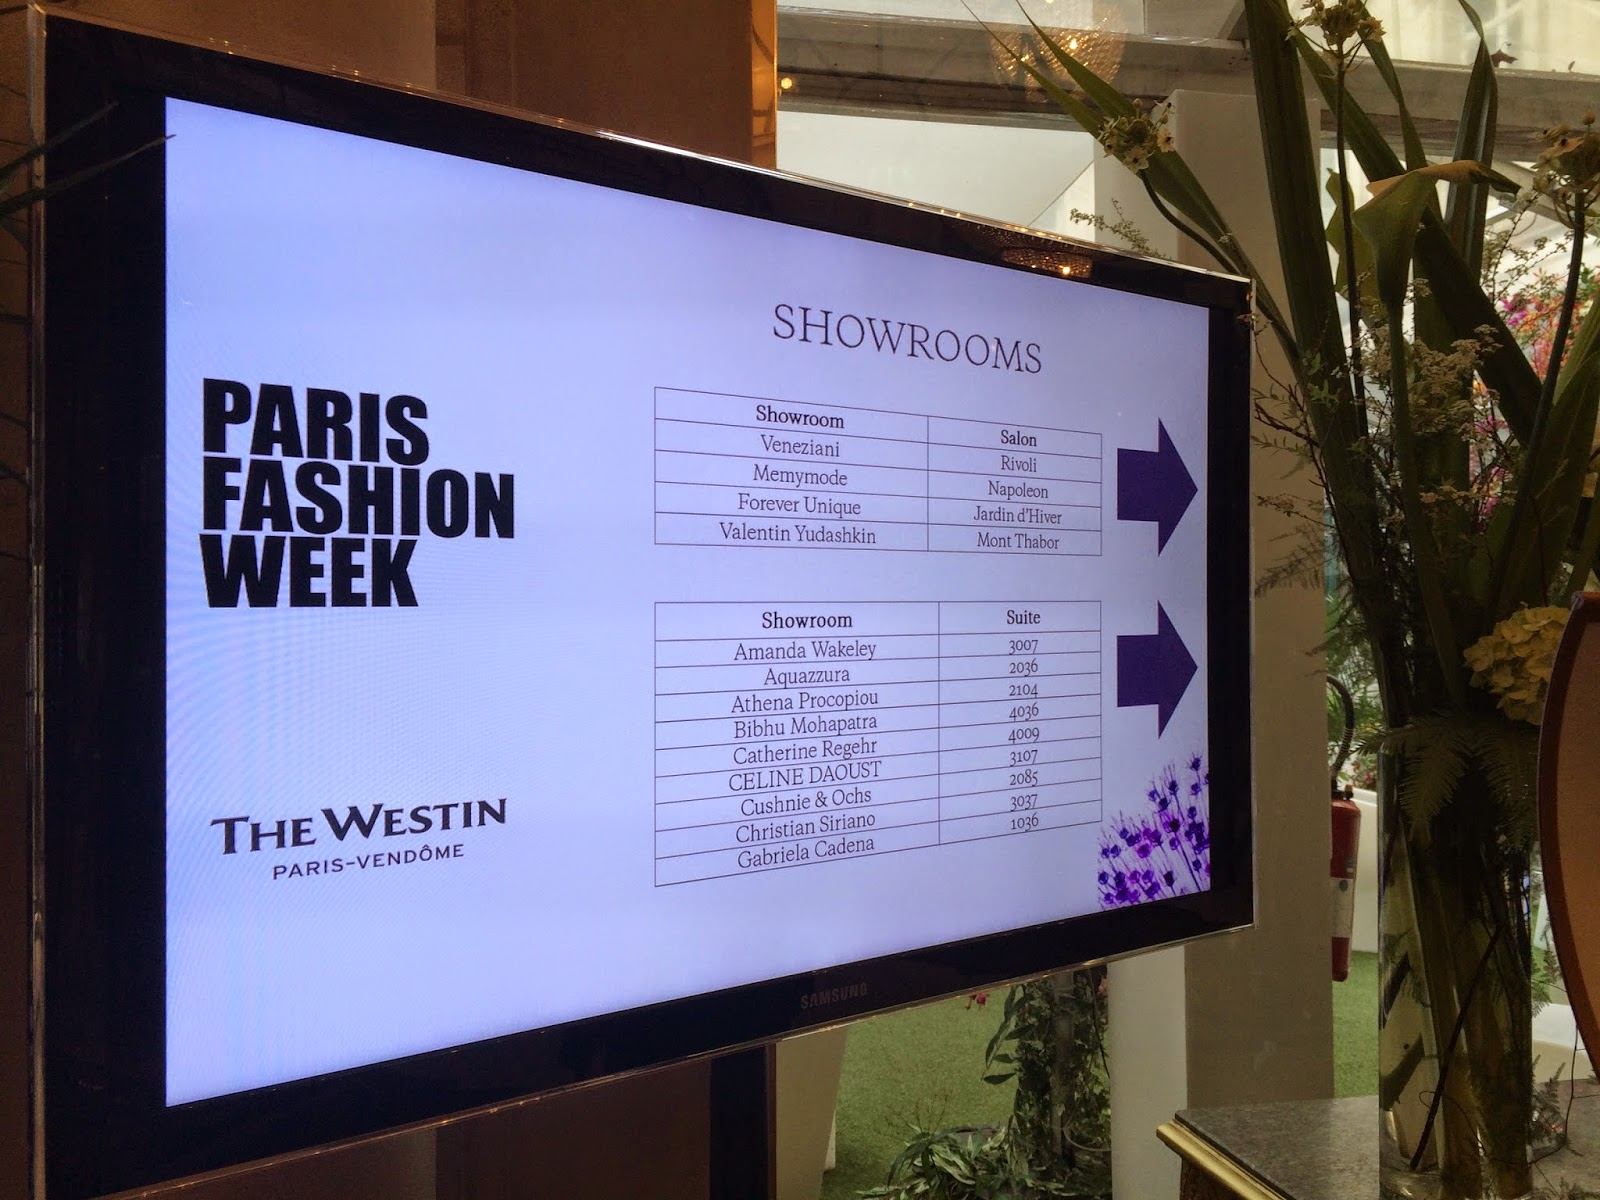 Fashion Week at The Westin, Paris